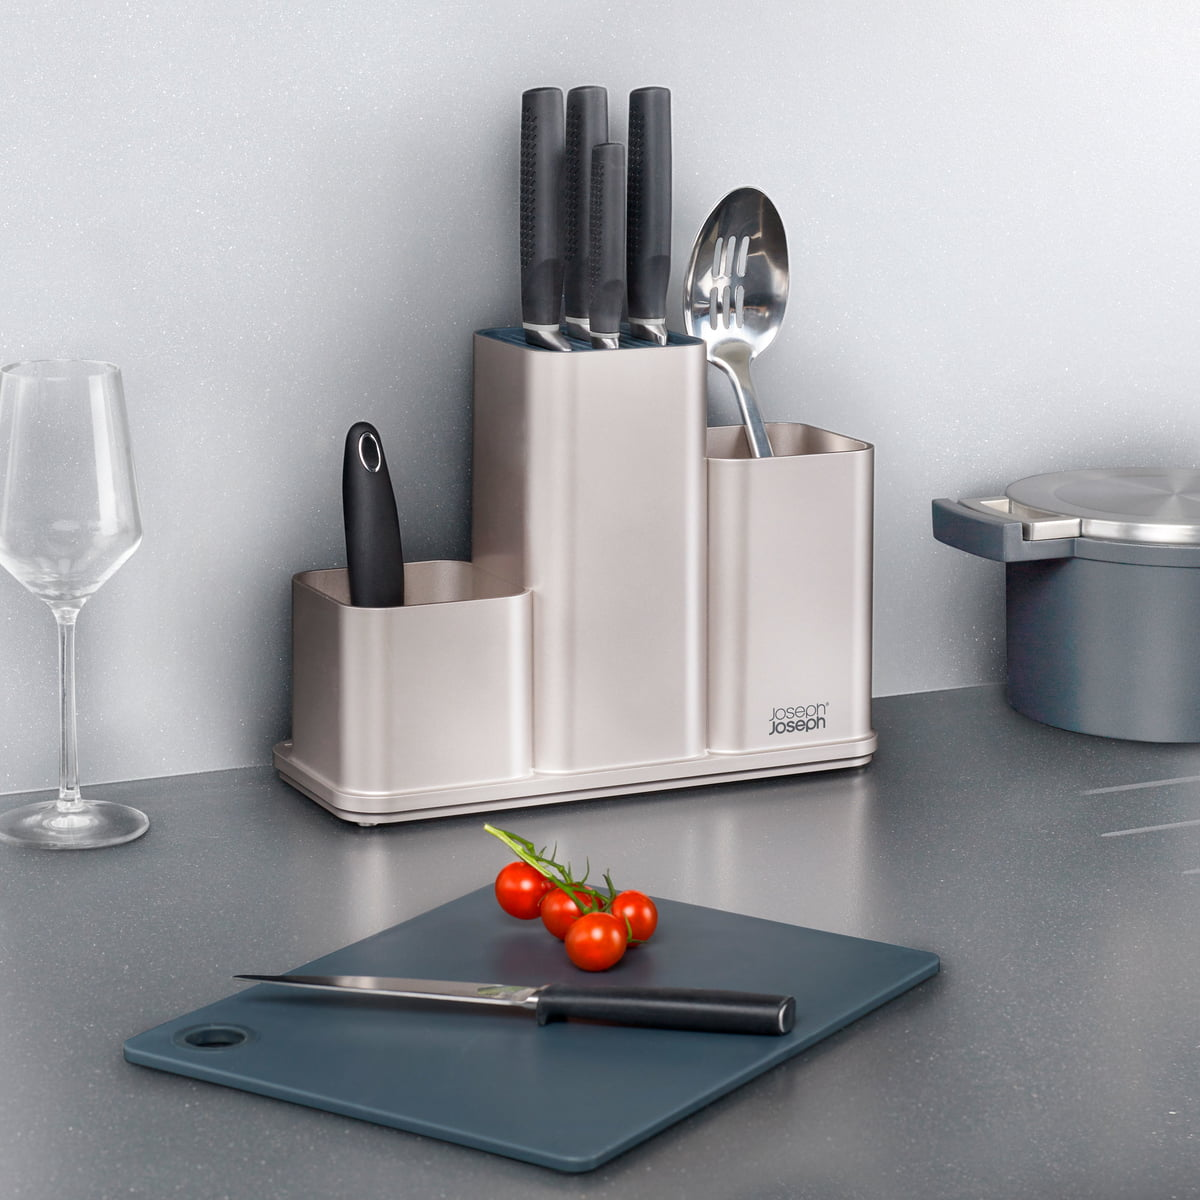 CounterStore Kitchen Worktop Organiser with Chopping Board by ...